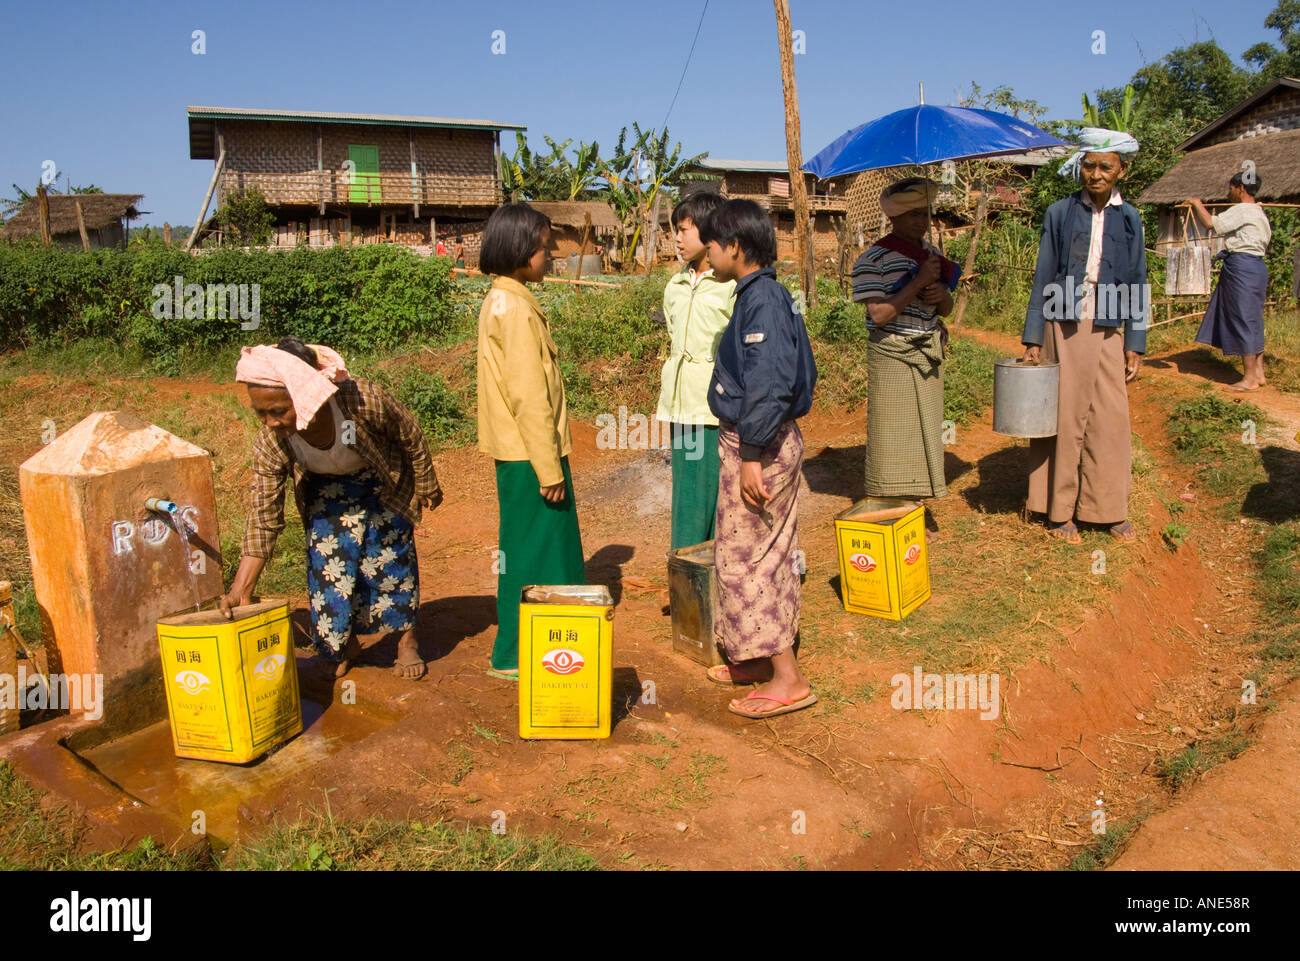 Water supply network built by a local NGO - Stock Image